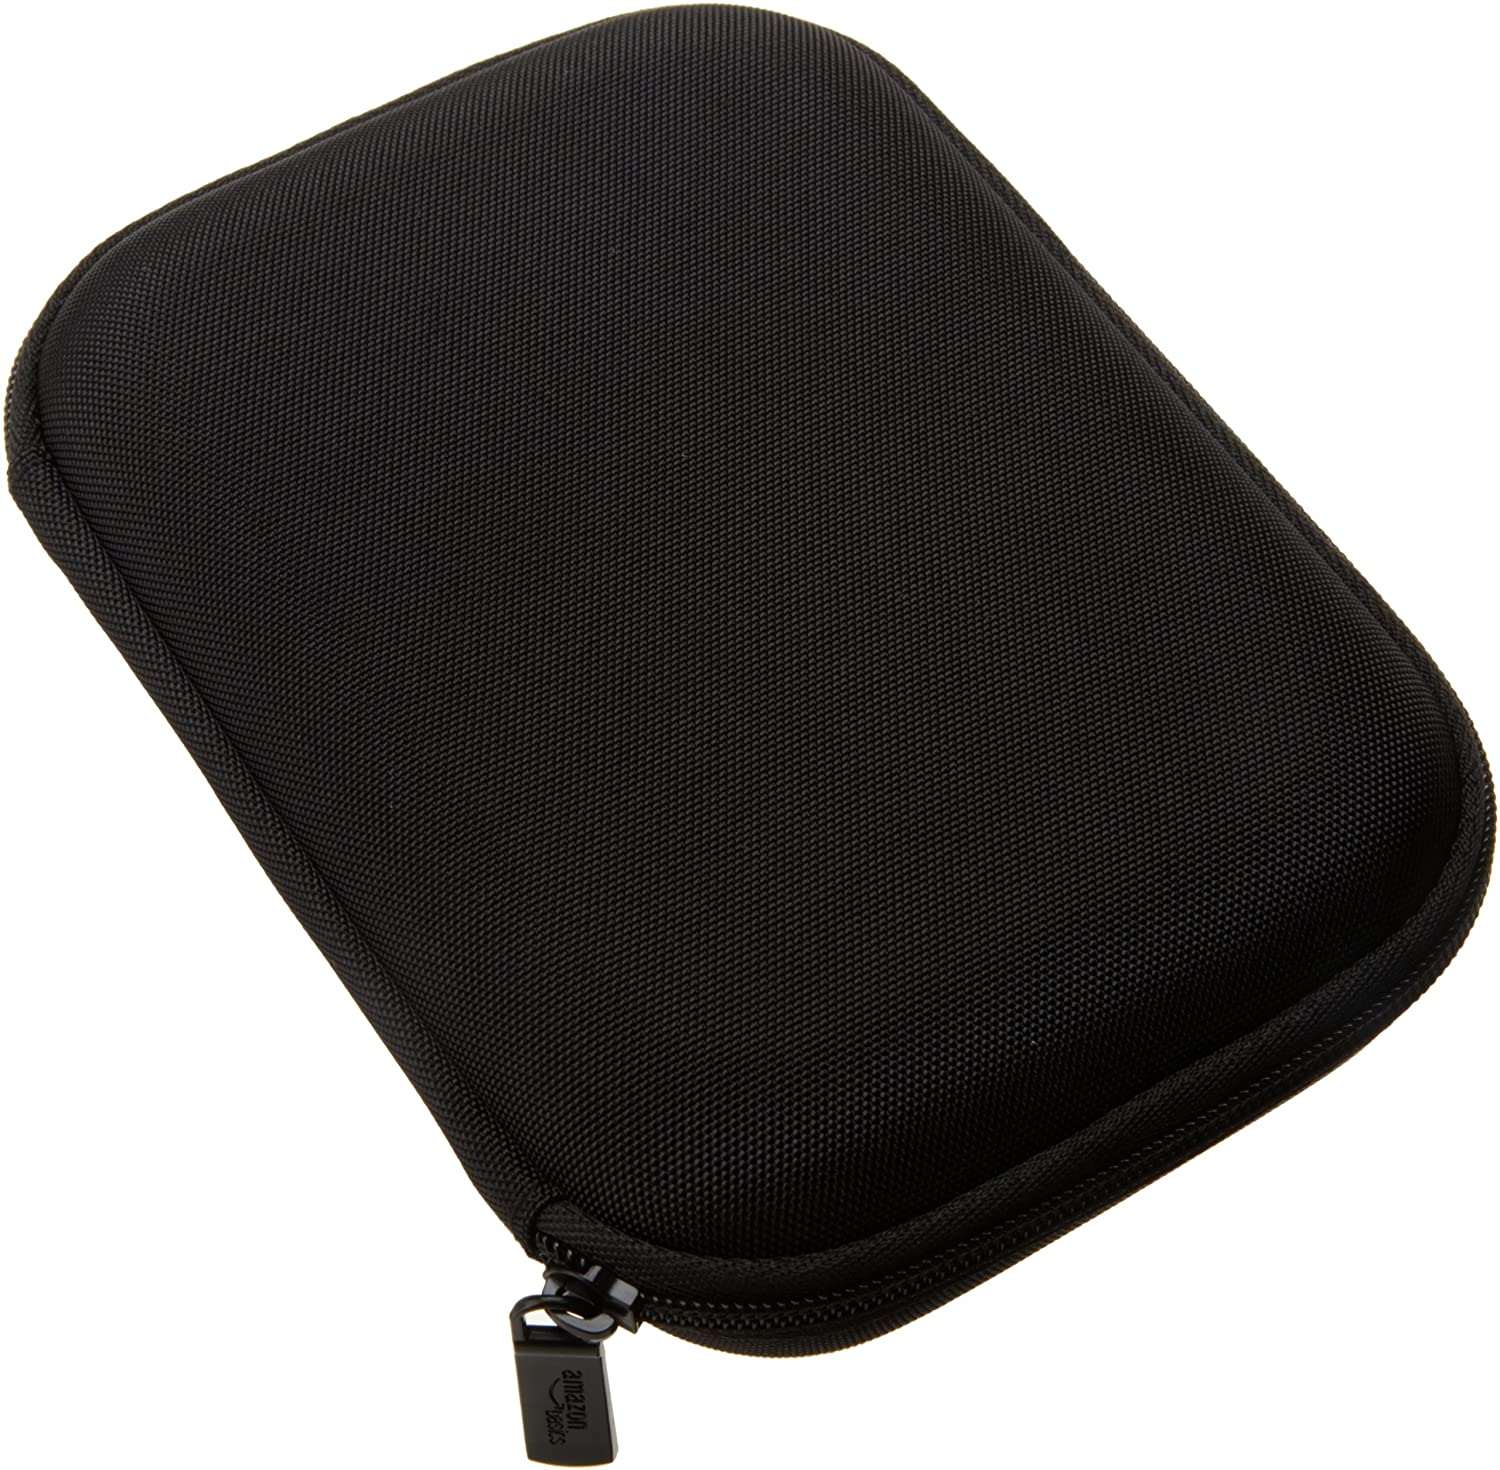 AmazonBasics Hard Carrying Case for 5-inch GPS (Black) By Amazon @ Rs.699